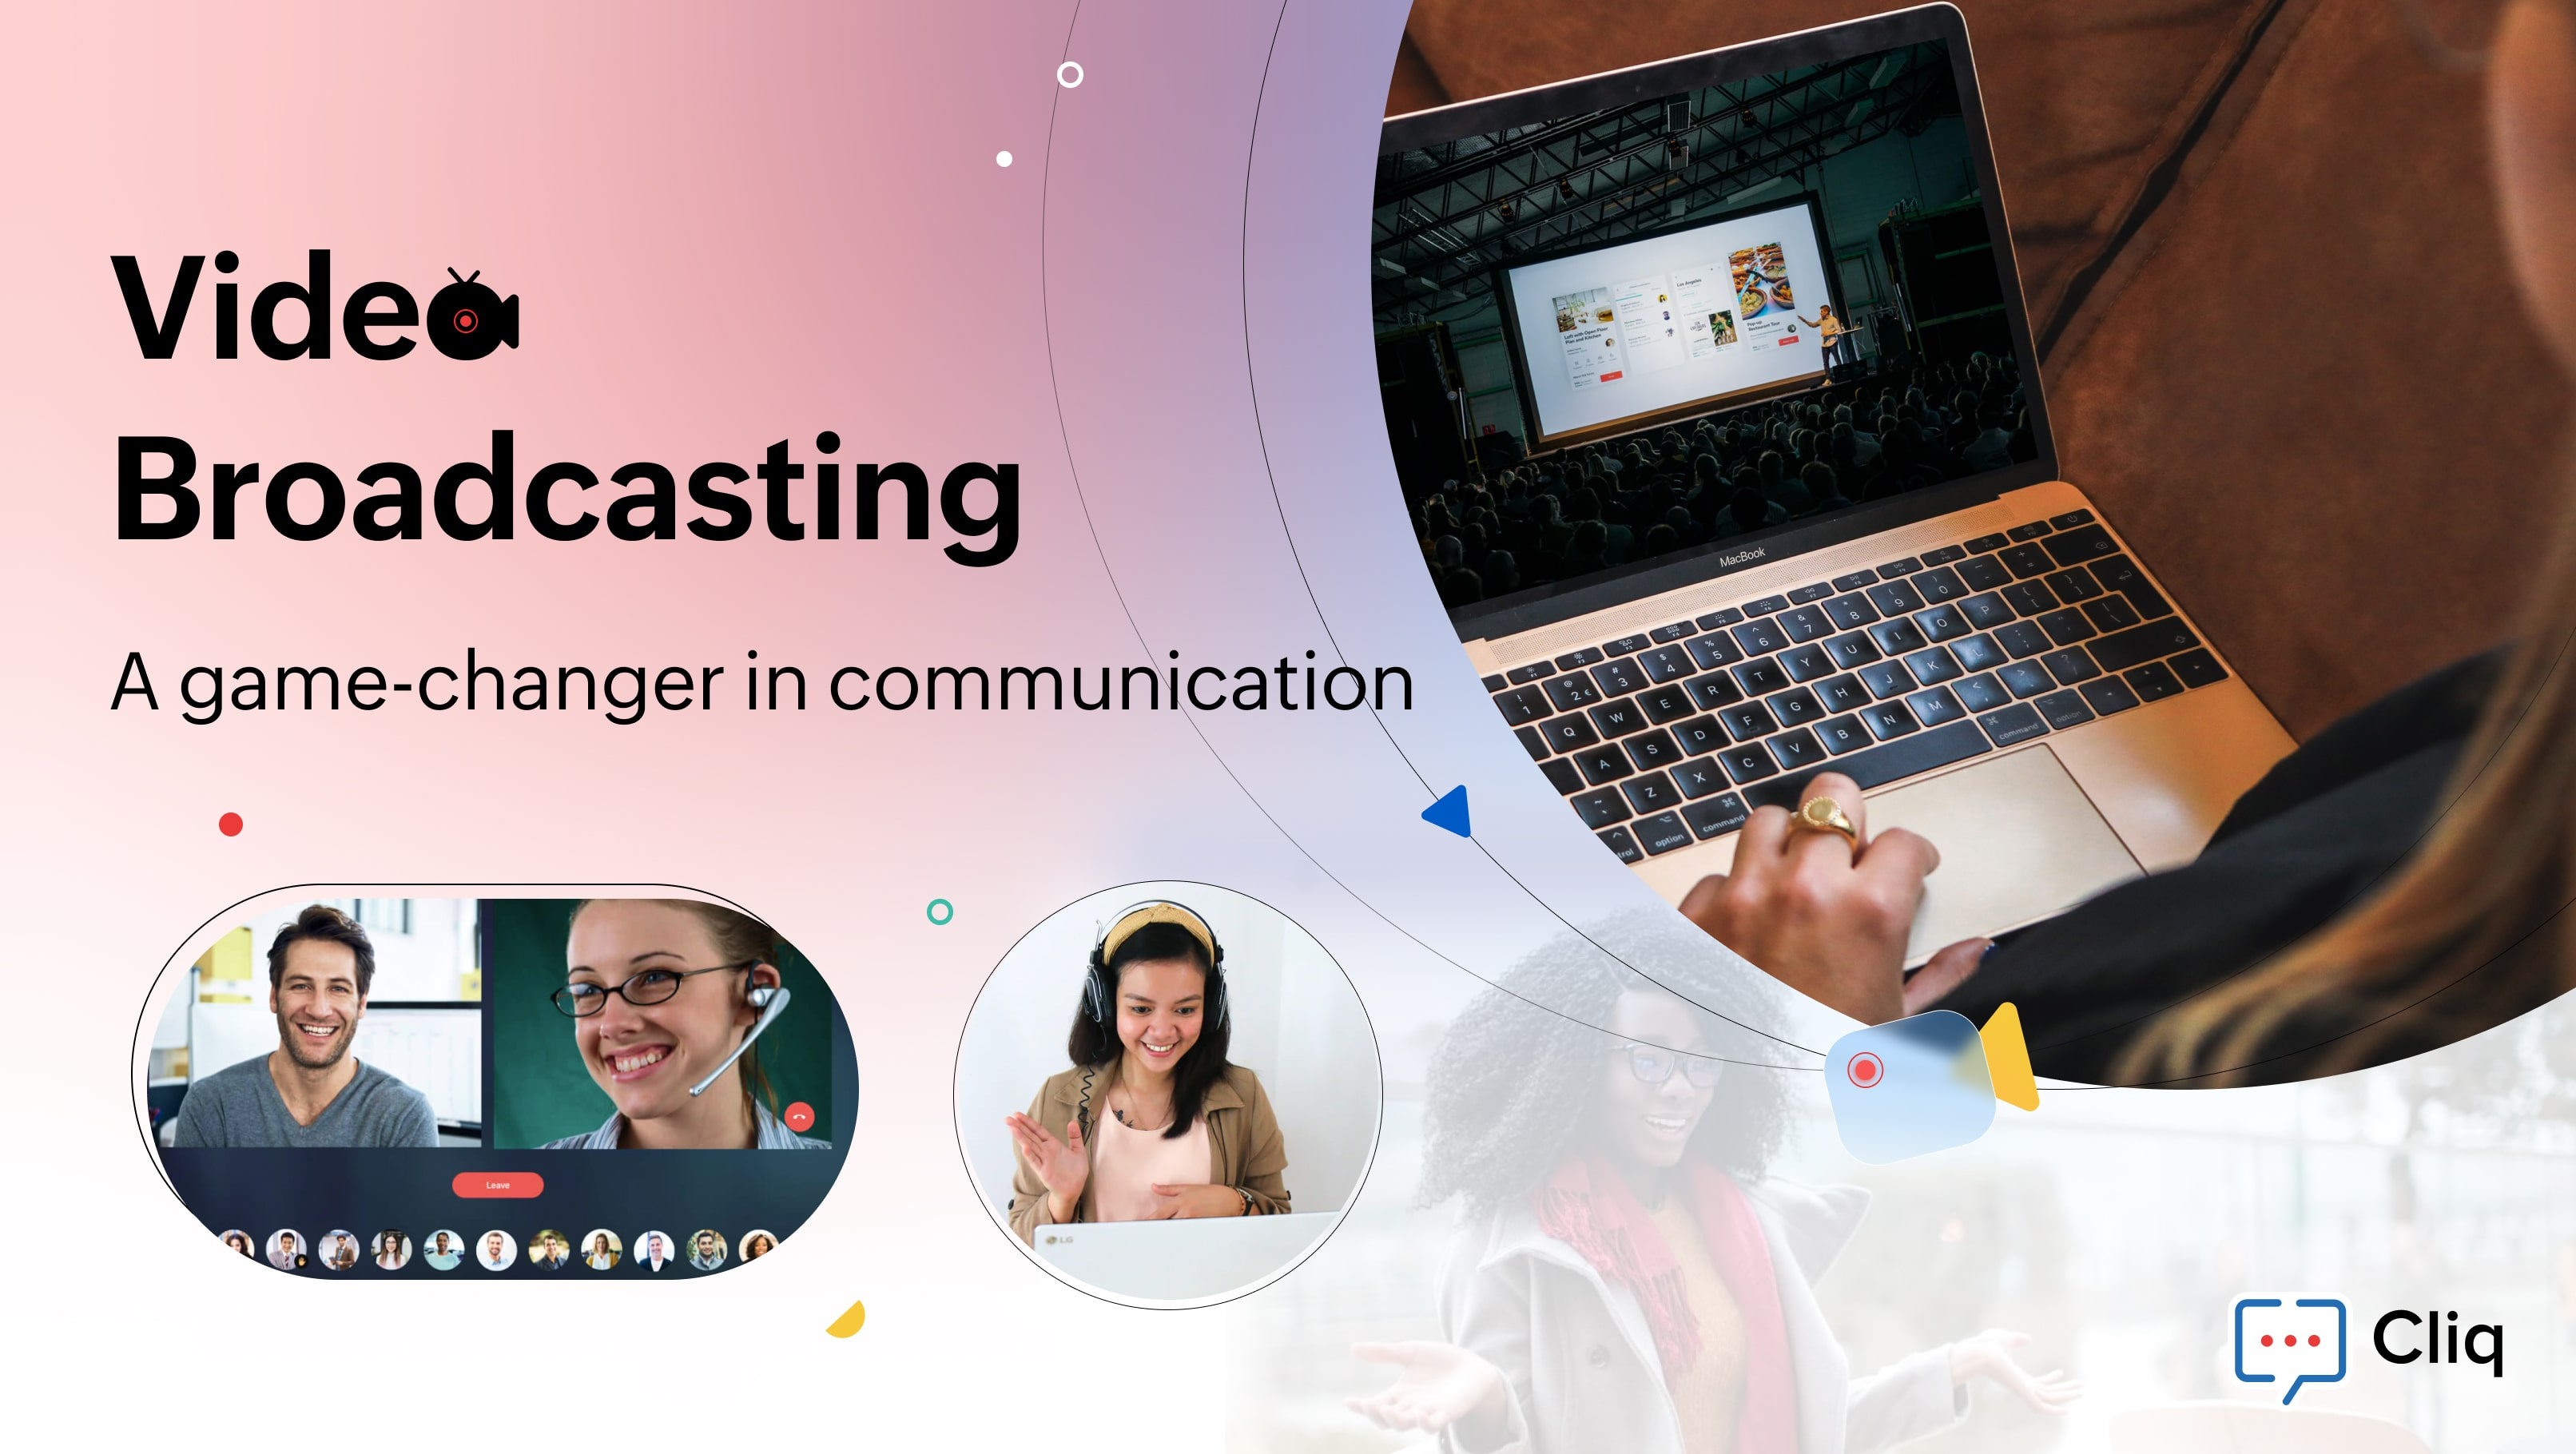 Video broadcasting: A game-changer in communication